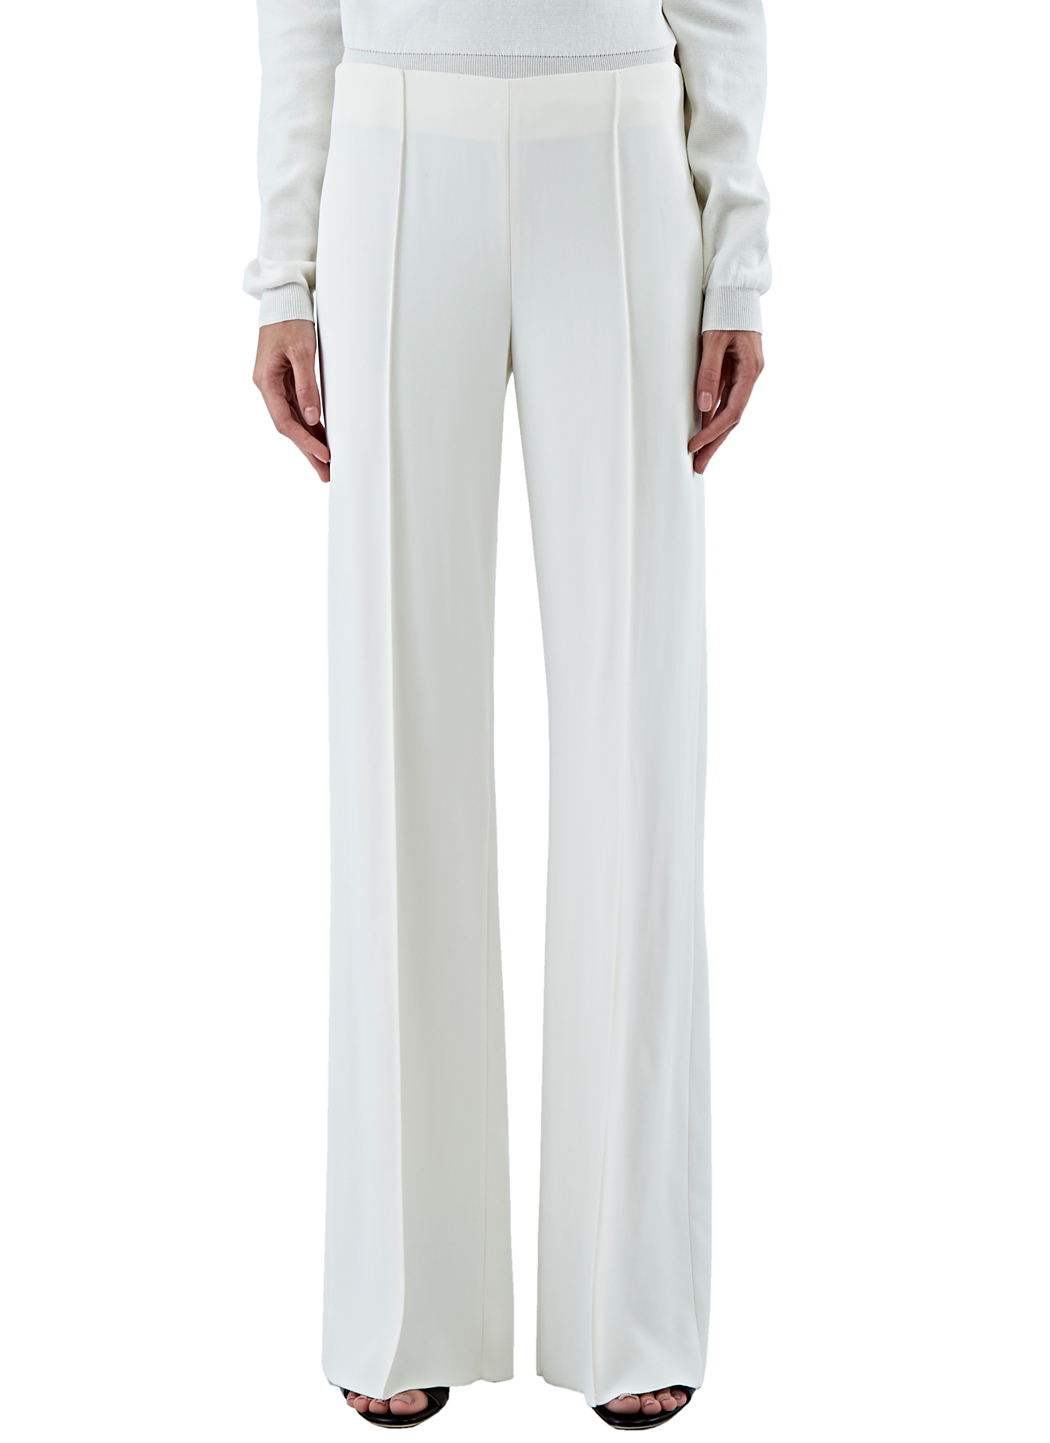 Agnona Women's Wide Leg Pants In Off-white in White | Lyst